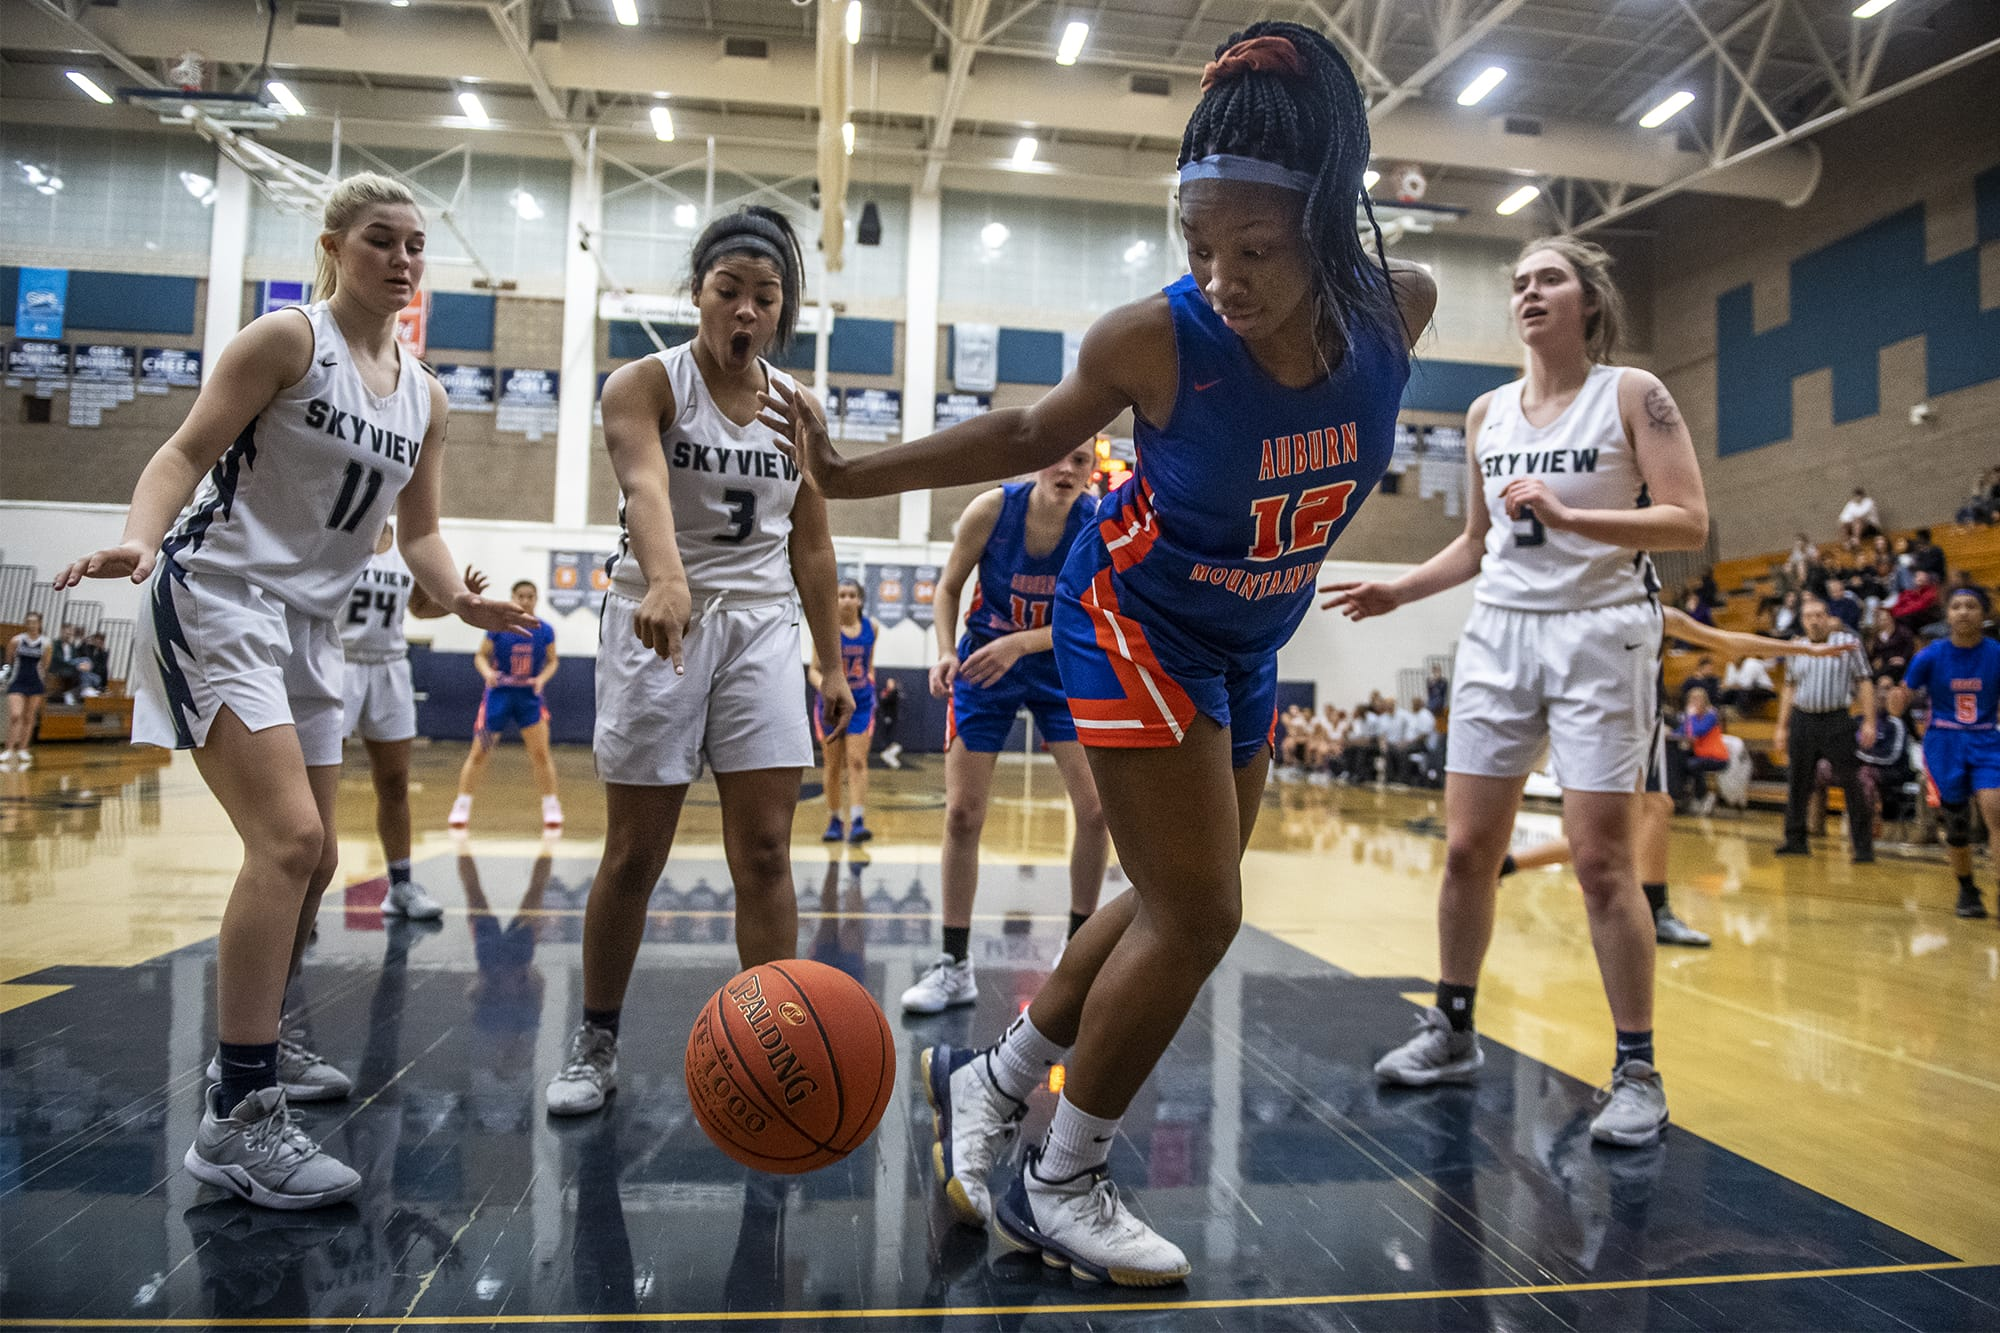 Skyview's Mikelle Anthony, center left, reacts to Auburn's Azaria Johnson's efforts to keep the ball in bounds during a game at Skyview High School on Thursday night, Feb. 13, 2020. (Nathan Howard/The Columbian)